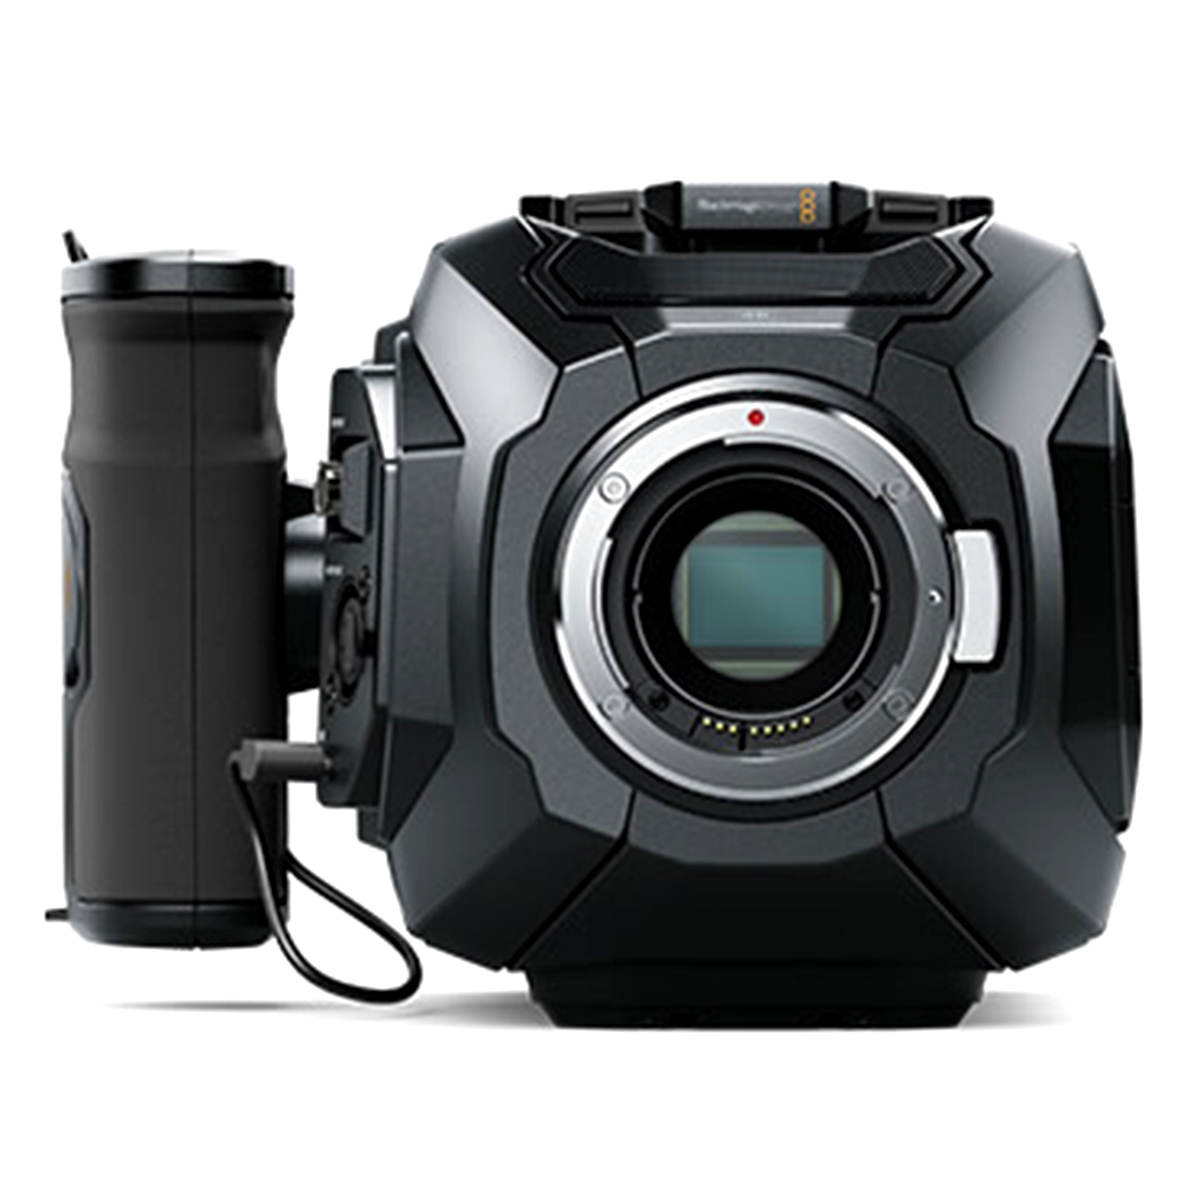 Blackmagic Design URSA Mini 4.6K EF - Image #1